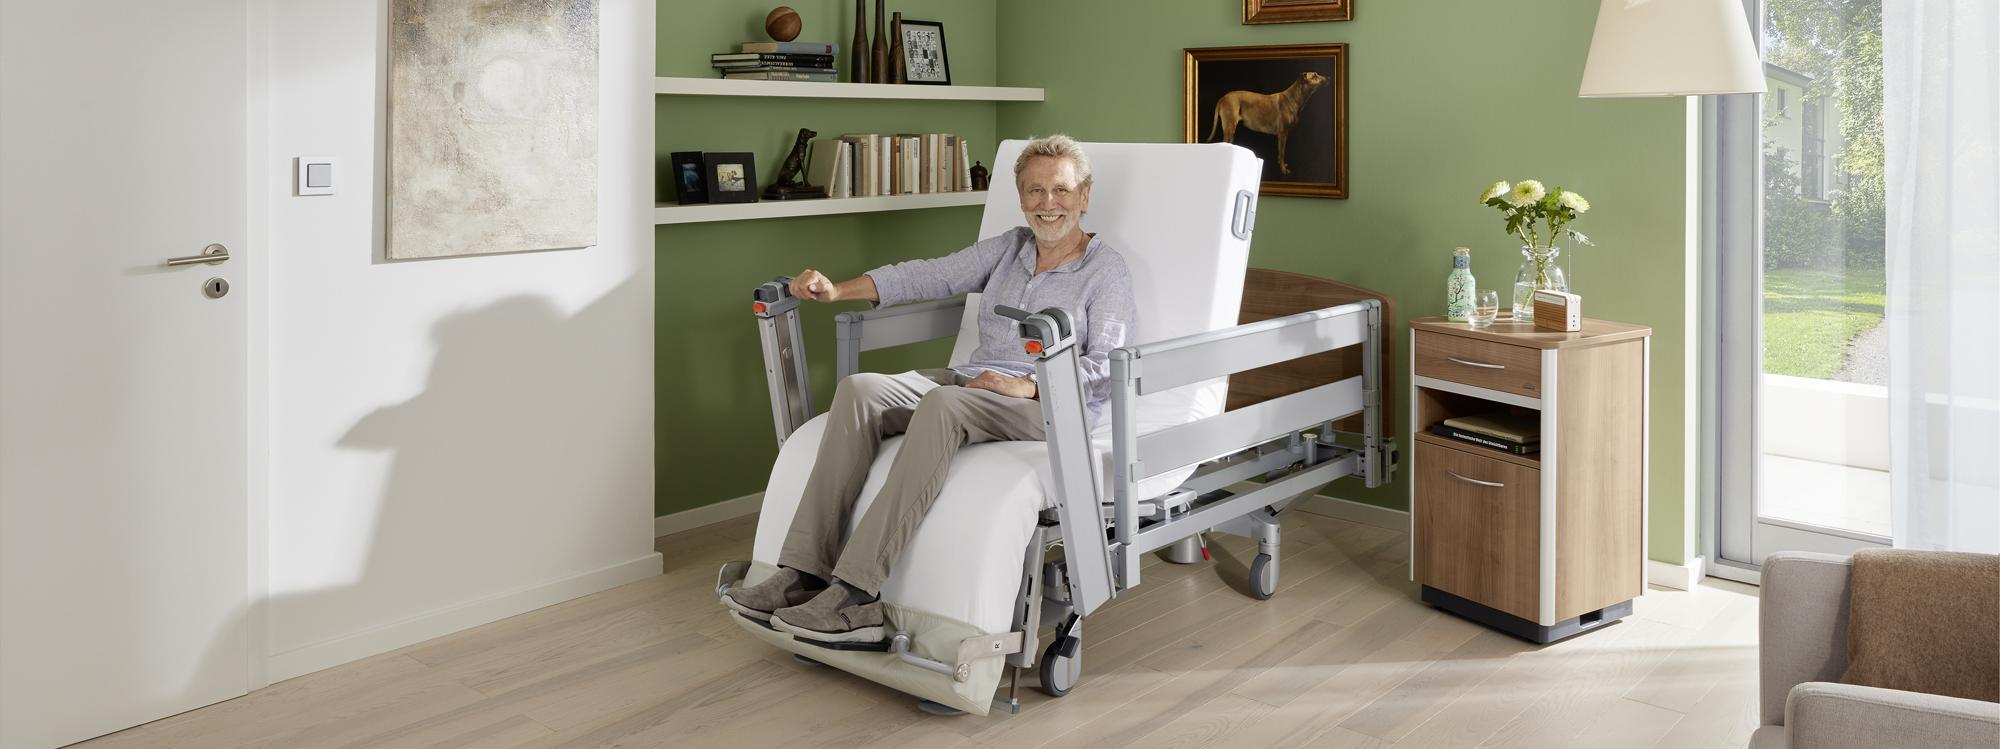 Health-promoting sitting position of the Vertica care mobilisation bed